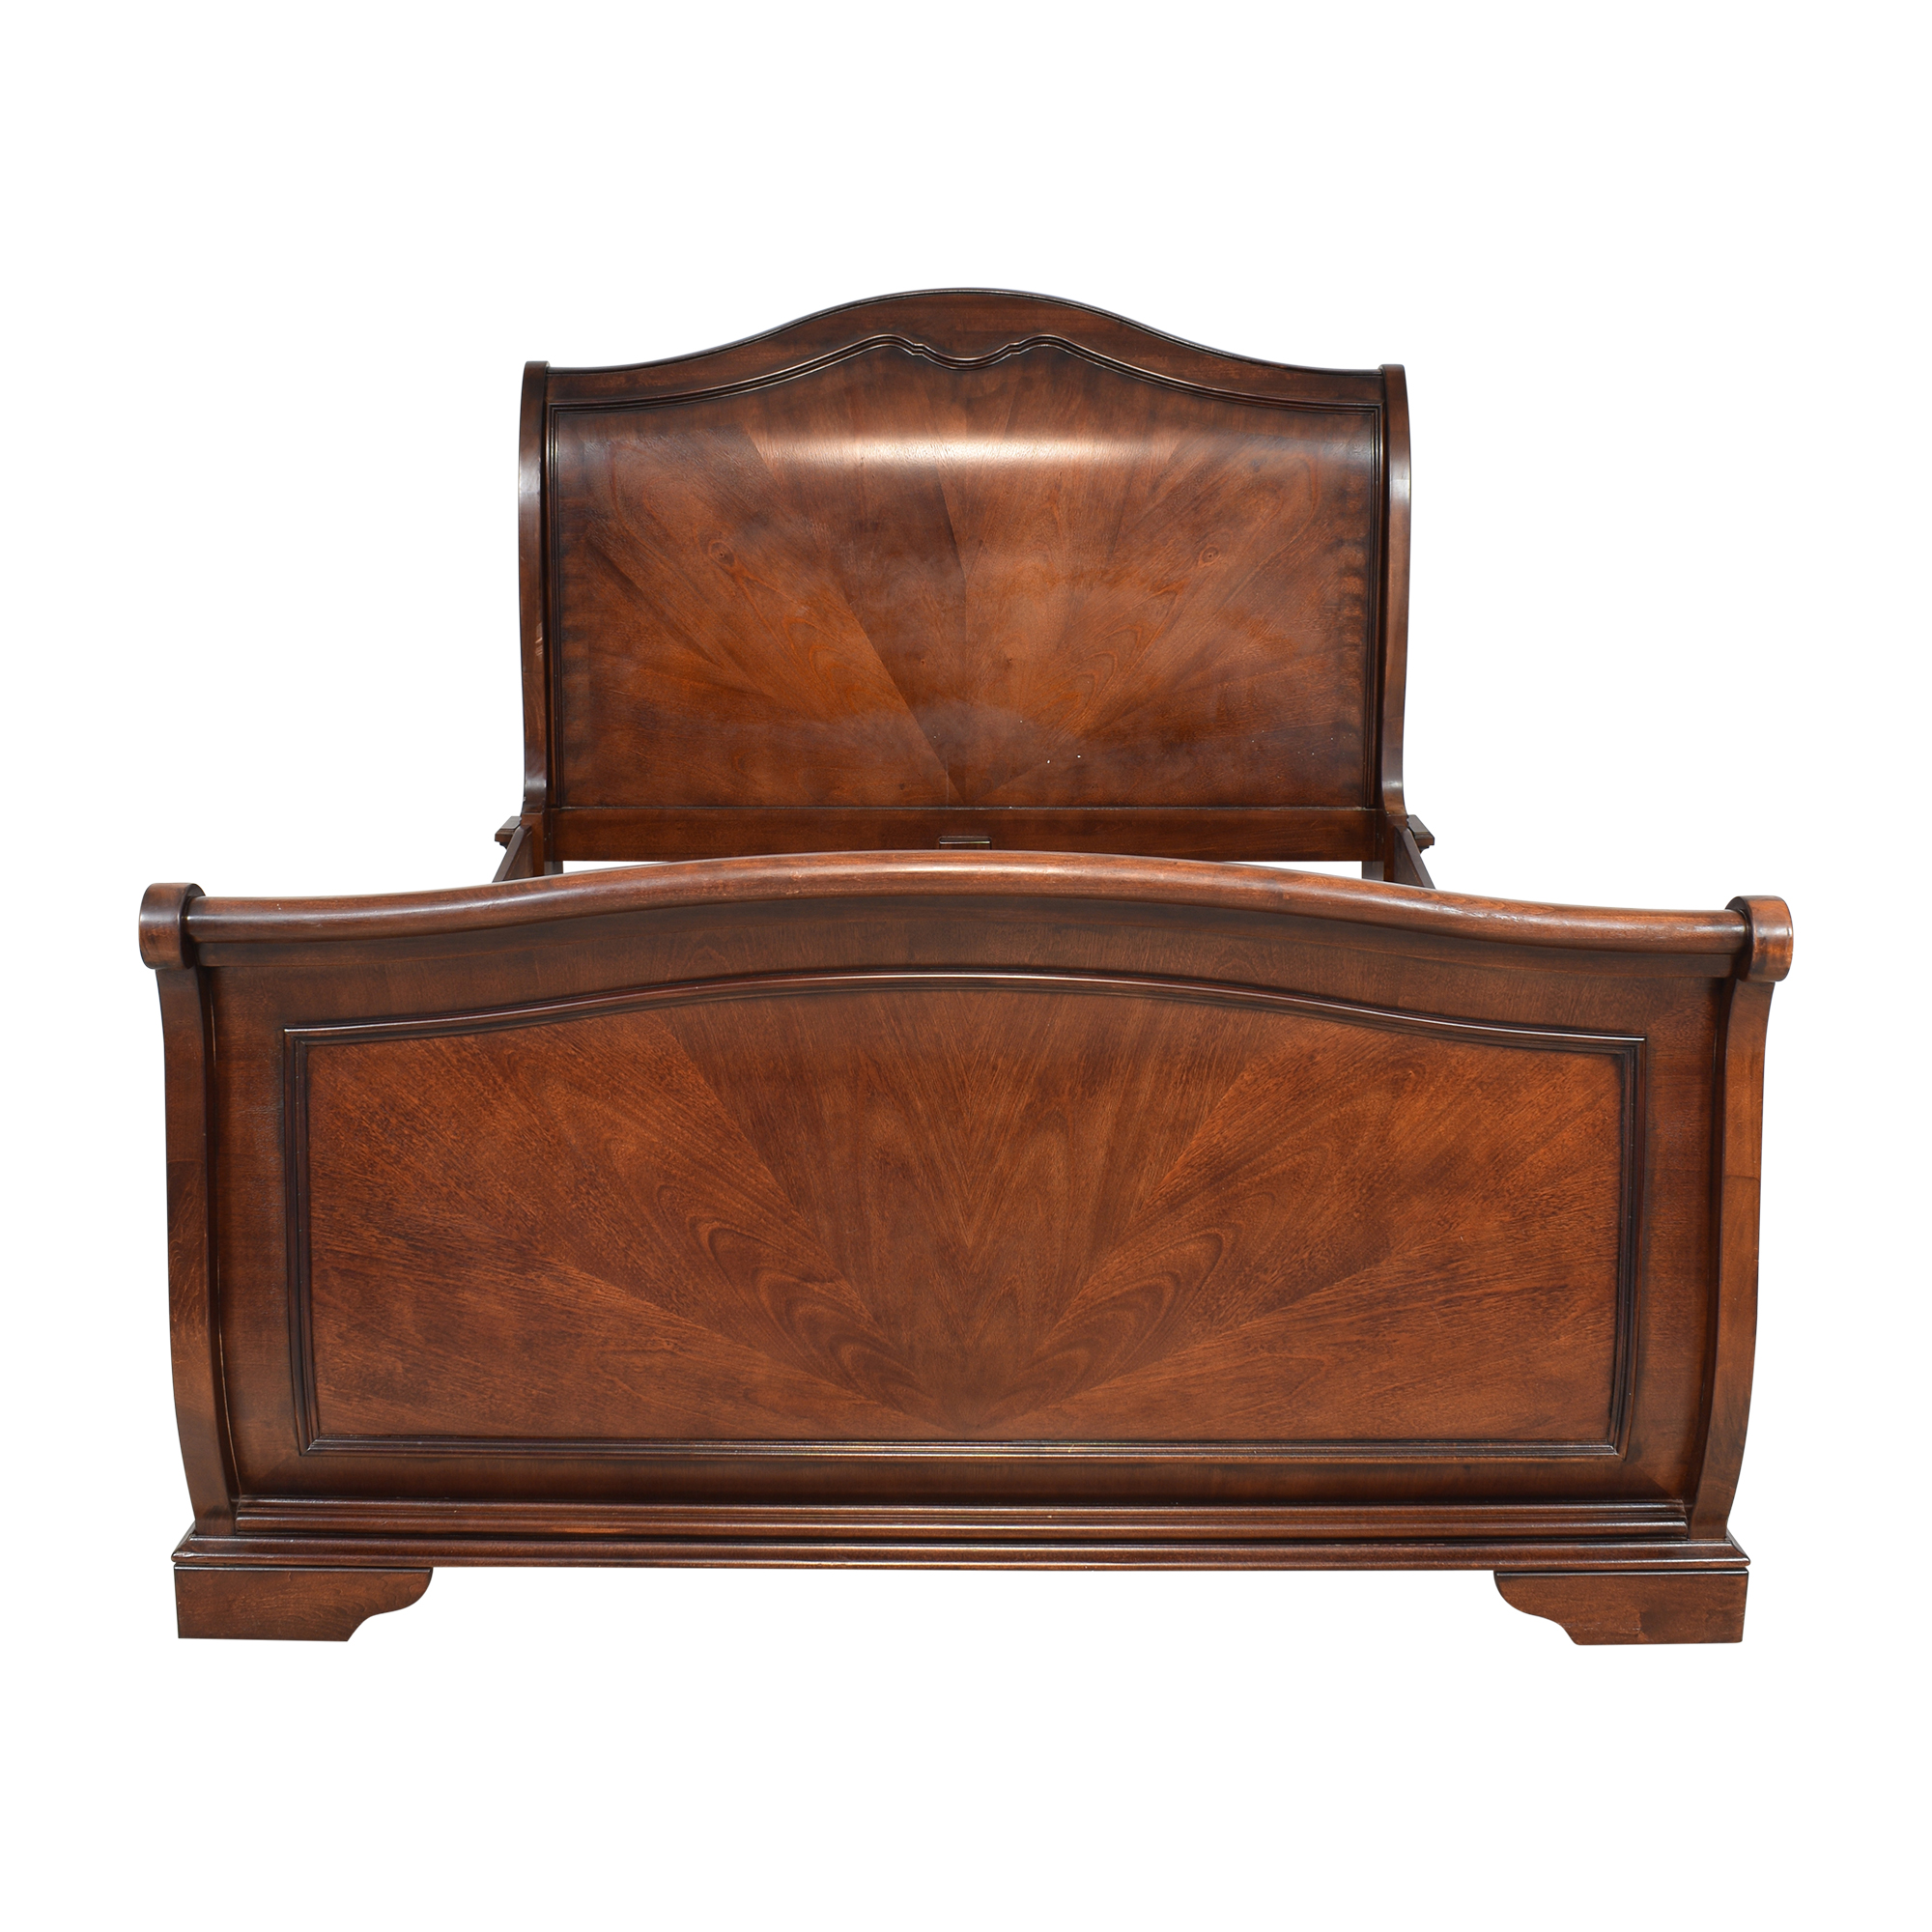 buy Raymour & Flanigan Queen Sleigh Bed Raymour & Flanigan Beds